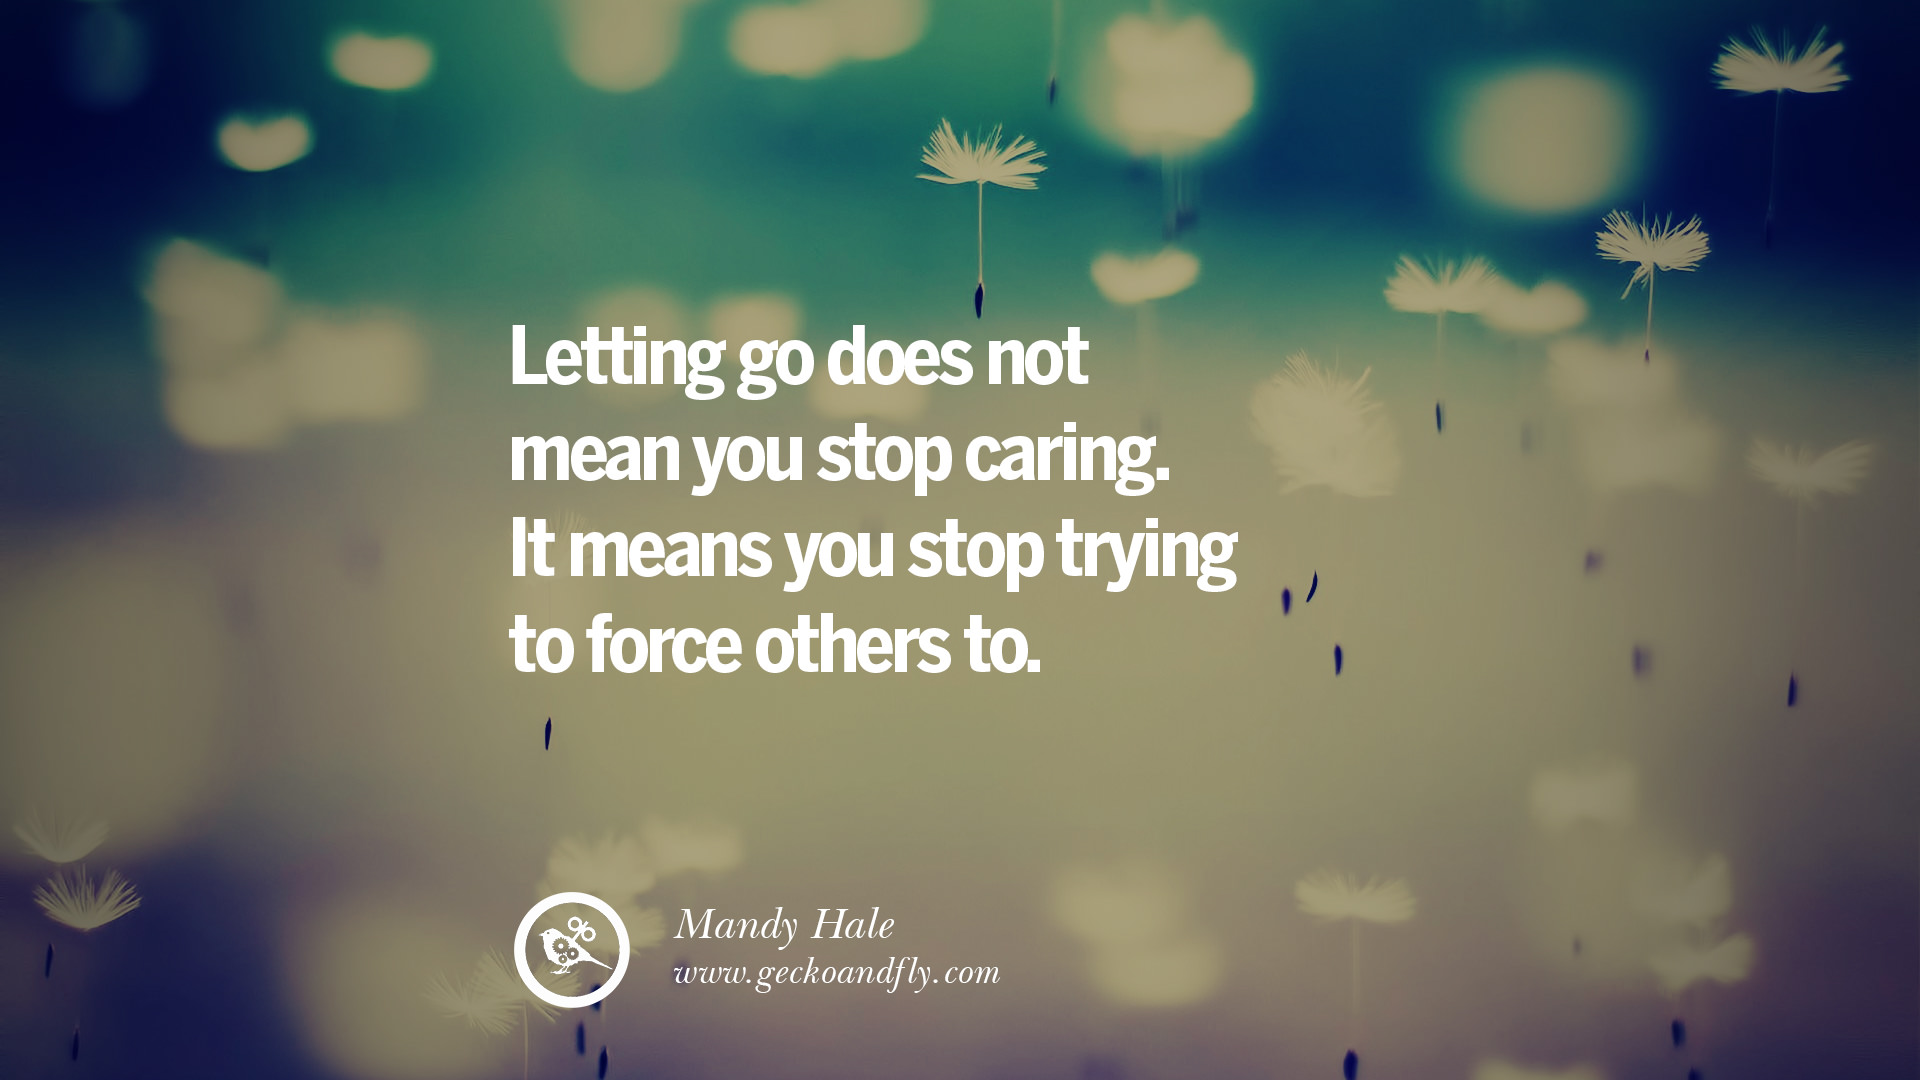 Quotes Letting Go Amazing 50 Quotes About Moving On And Letting Go Of Relationship And Love